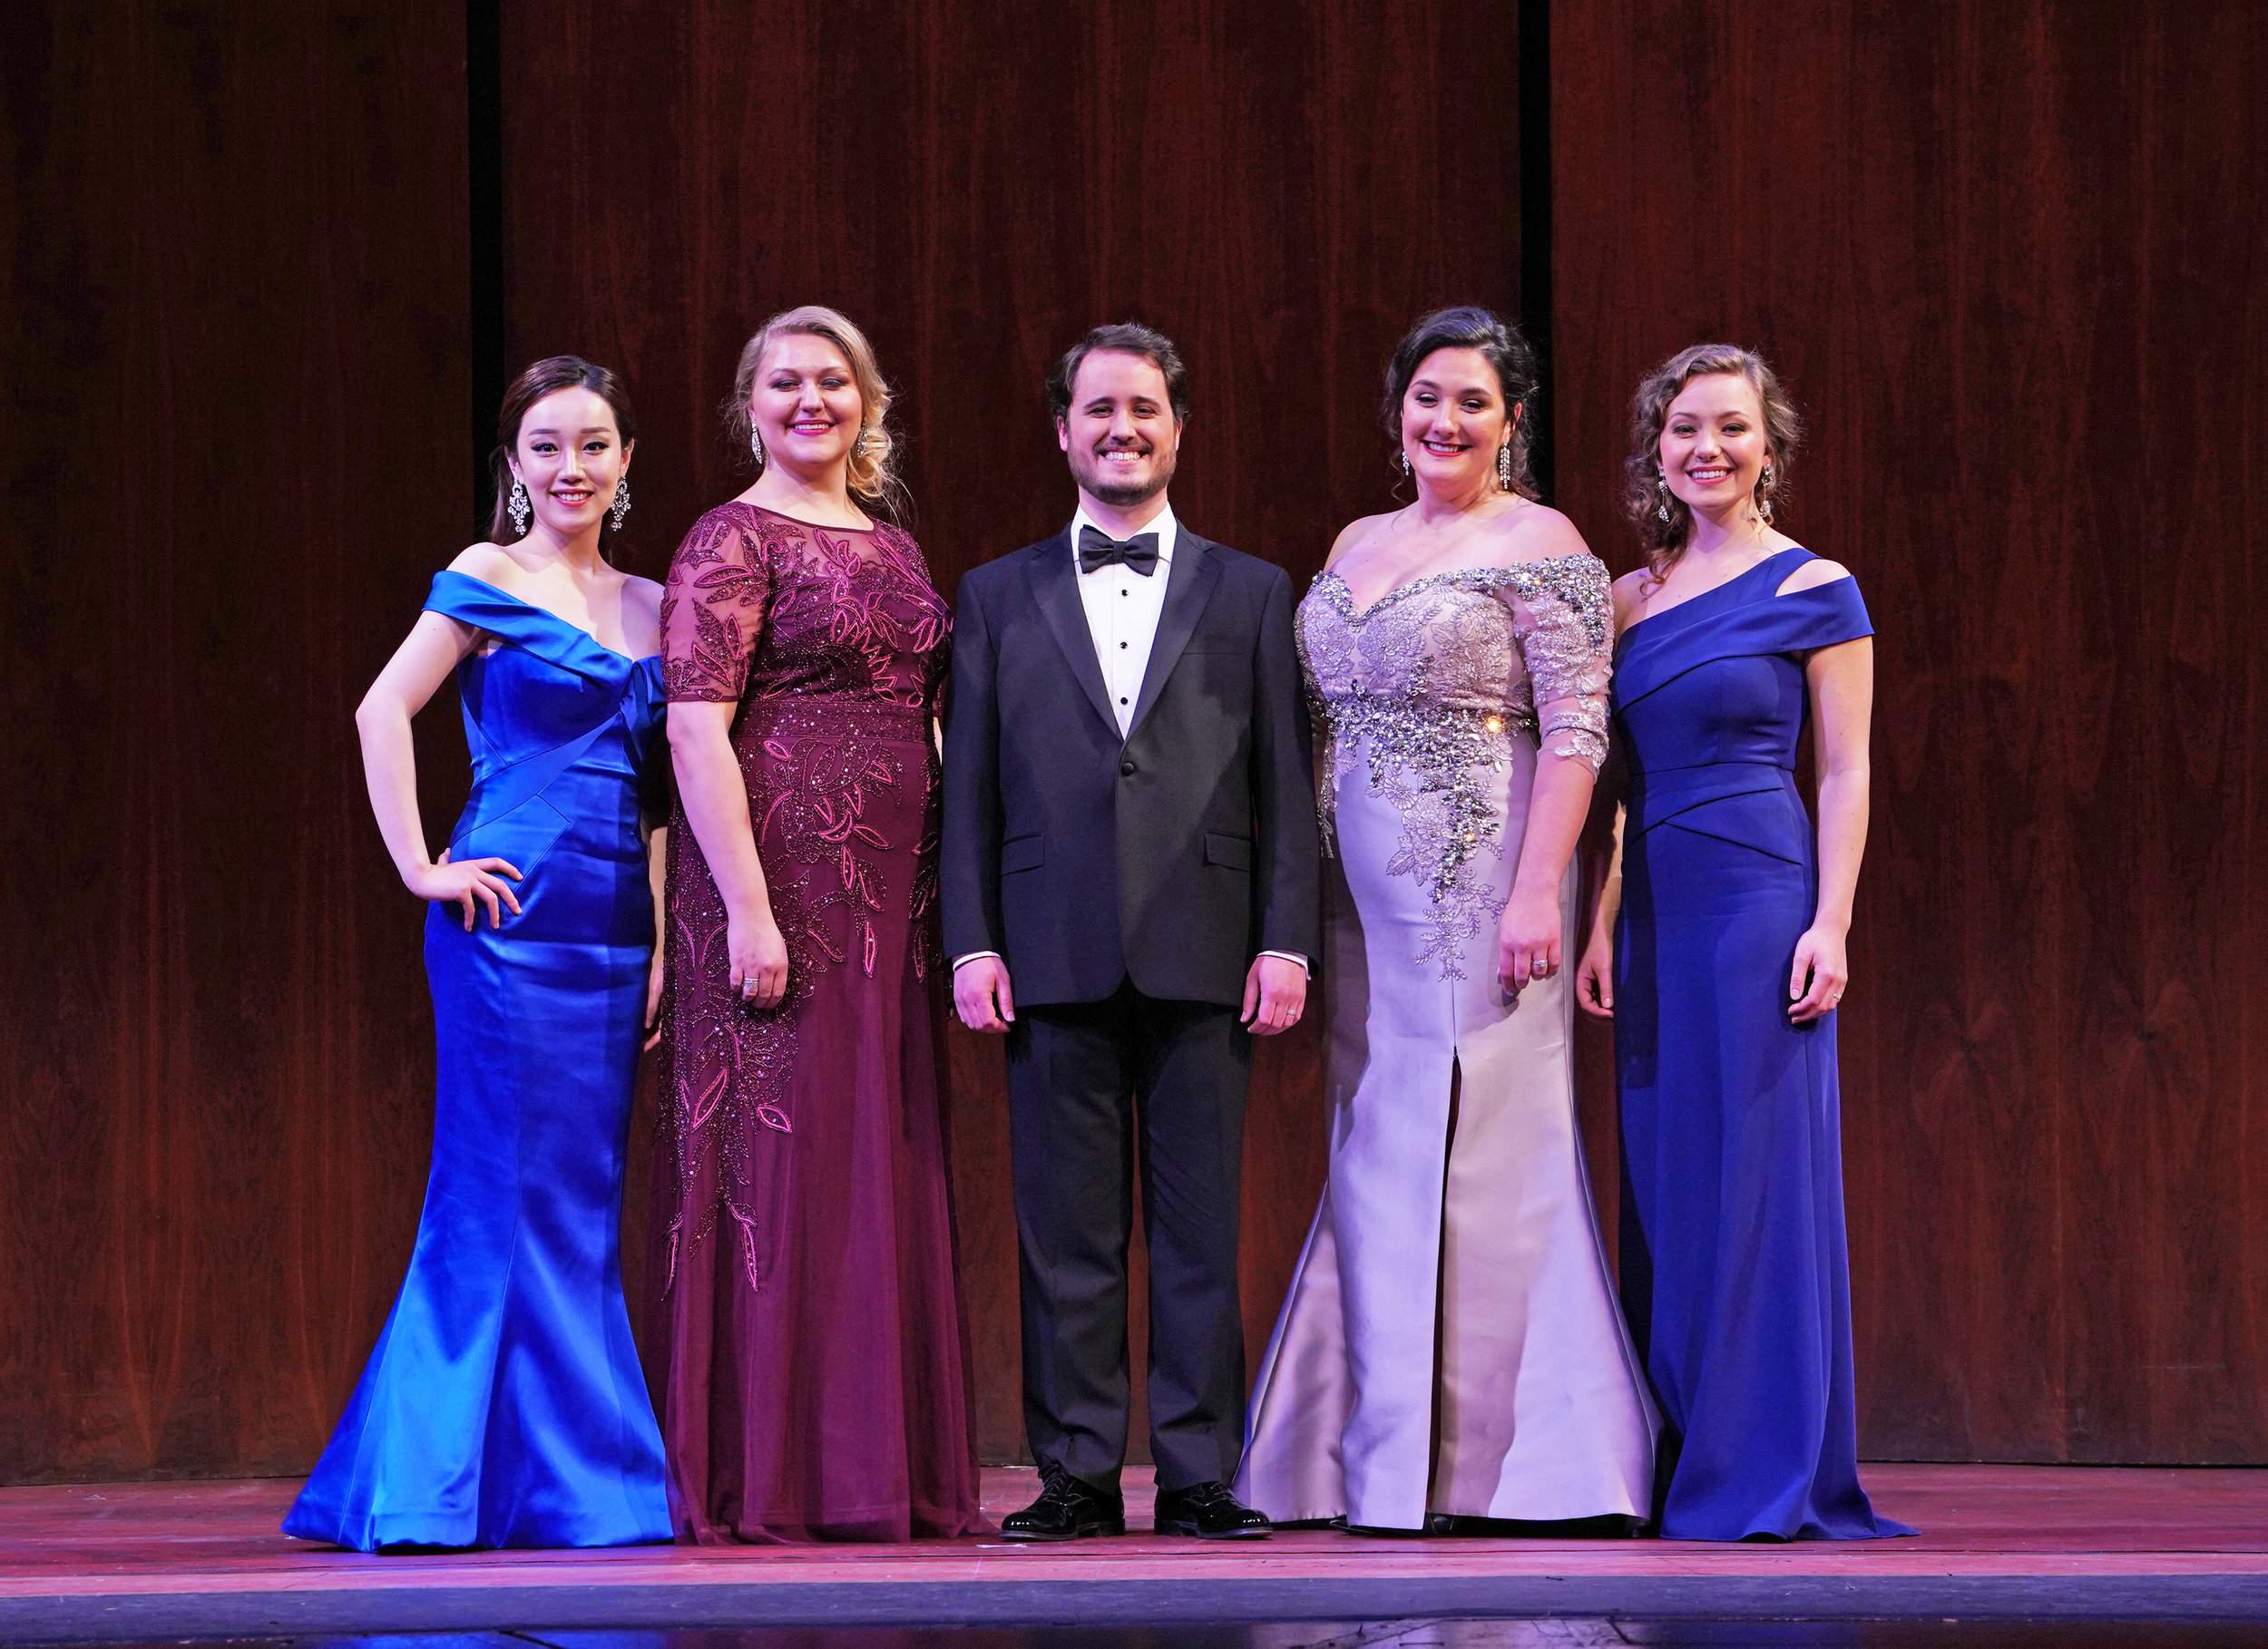 National Council Winners 2018  Ashley Dixon, Mezzo-Soprano, Northwest Region  Jessica Faselt, Soprano, Upper Midwest Region  Madison Leonard, Soprano, Middle Atlantic Region  Carlos Santelli, Tenor, Western Region  Hongni Wu, Mezzo-Soprano, Eastern Region  Photo credit: Richard Termine/Metropolitan Opera  L-R: Wu, Faselt, Santelli, Dixon, Leonard